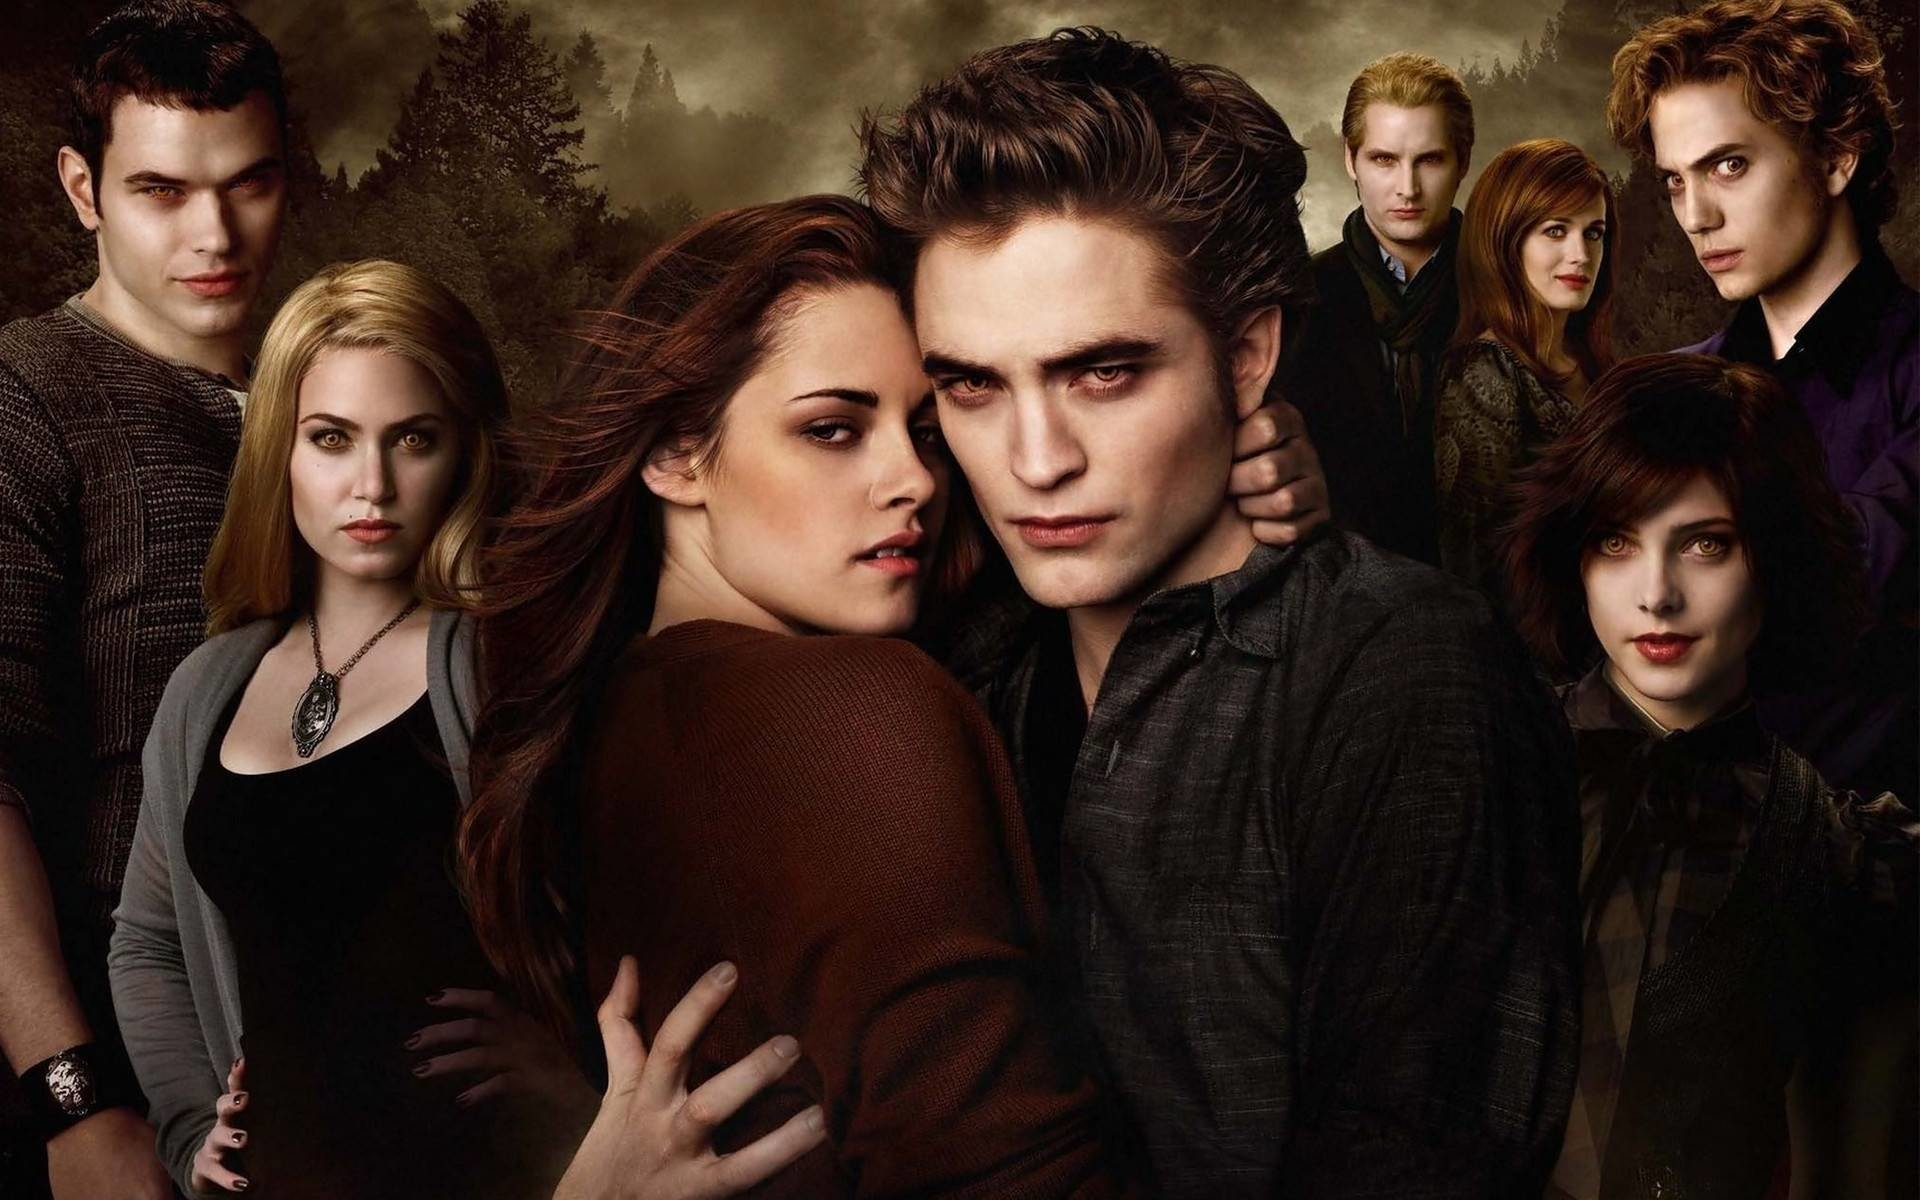 1920x1200 New Moon Wallpapers - Full HD wallpaper search